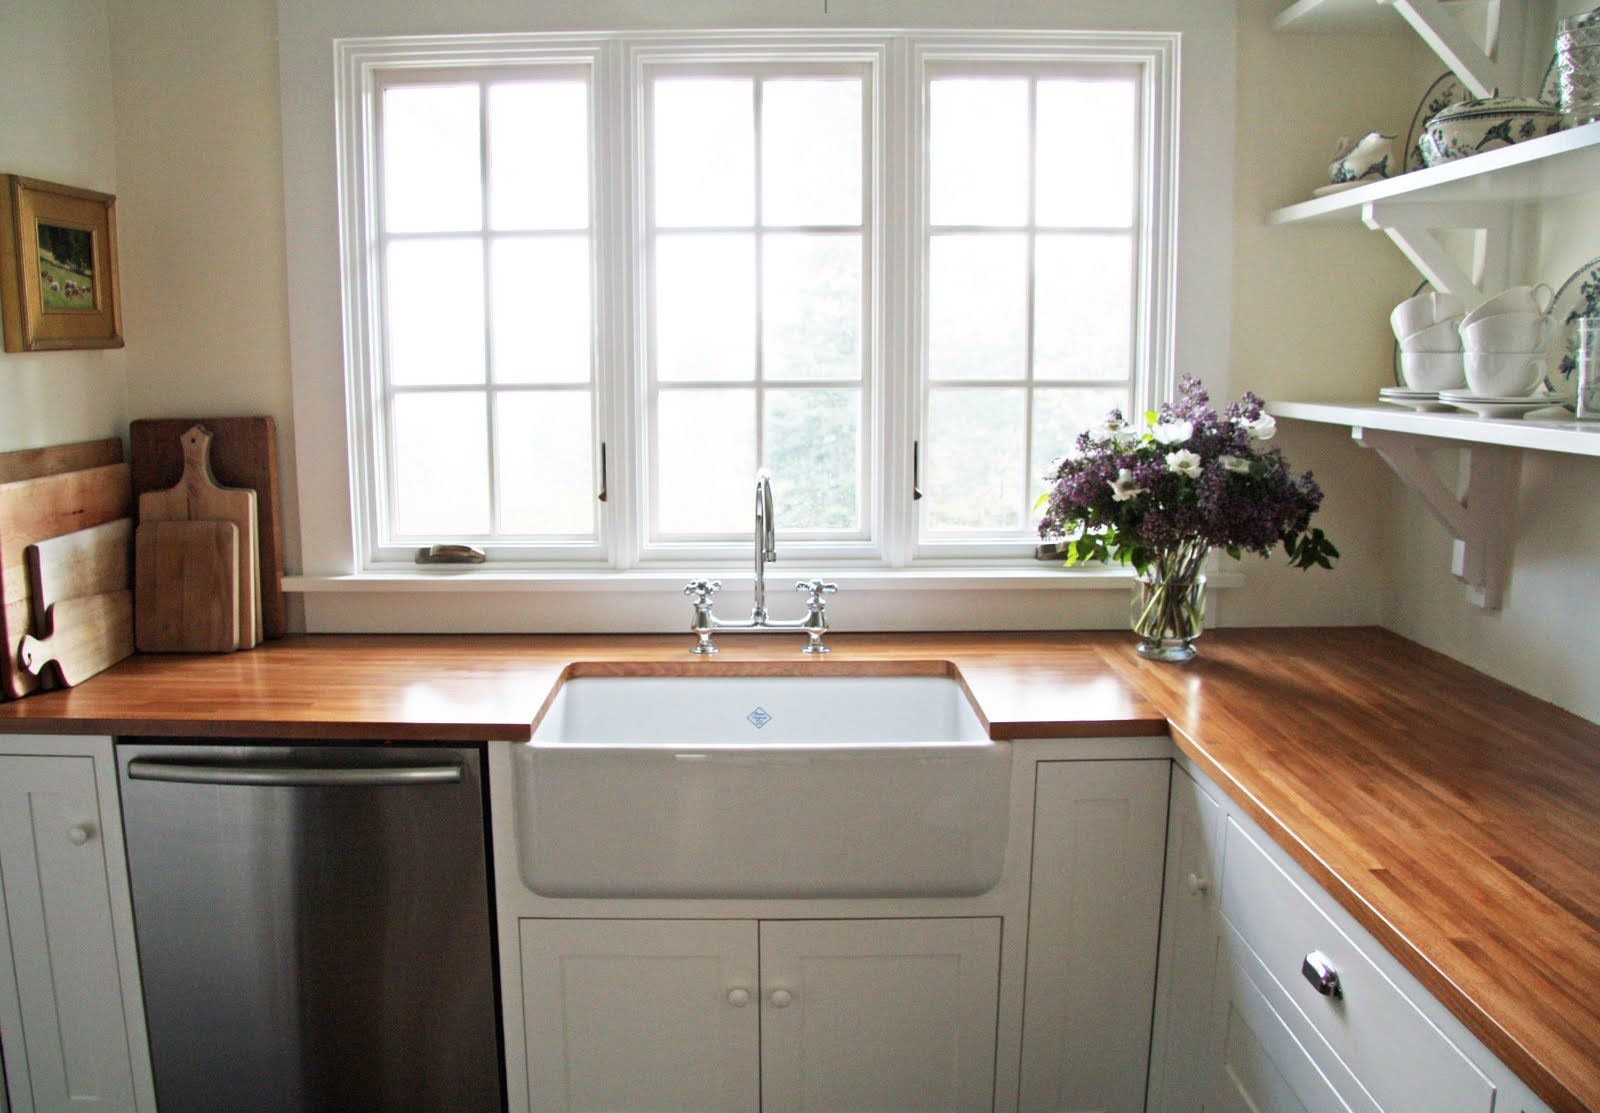 Best Wood For Butcher Block Counters: What To Know About Butcher Block Countertops